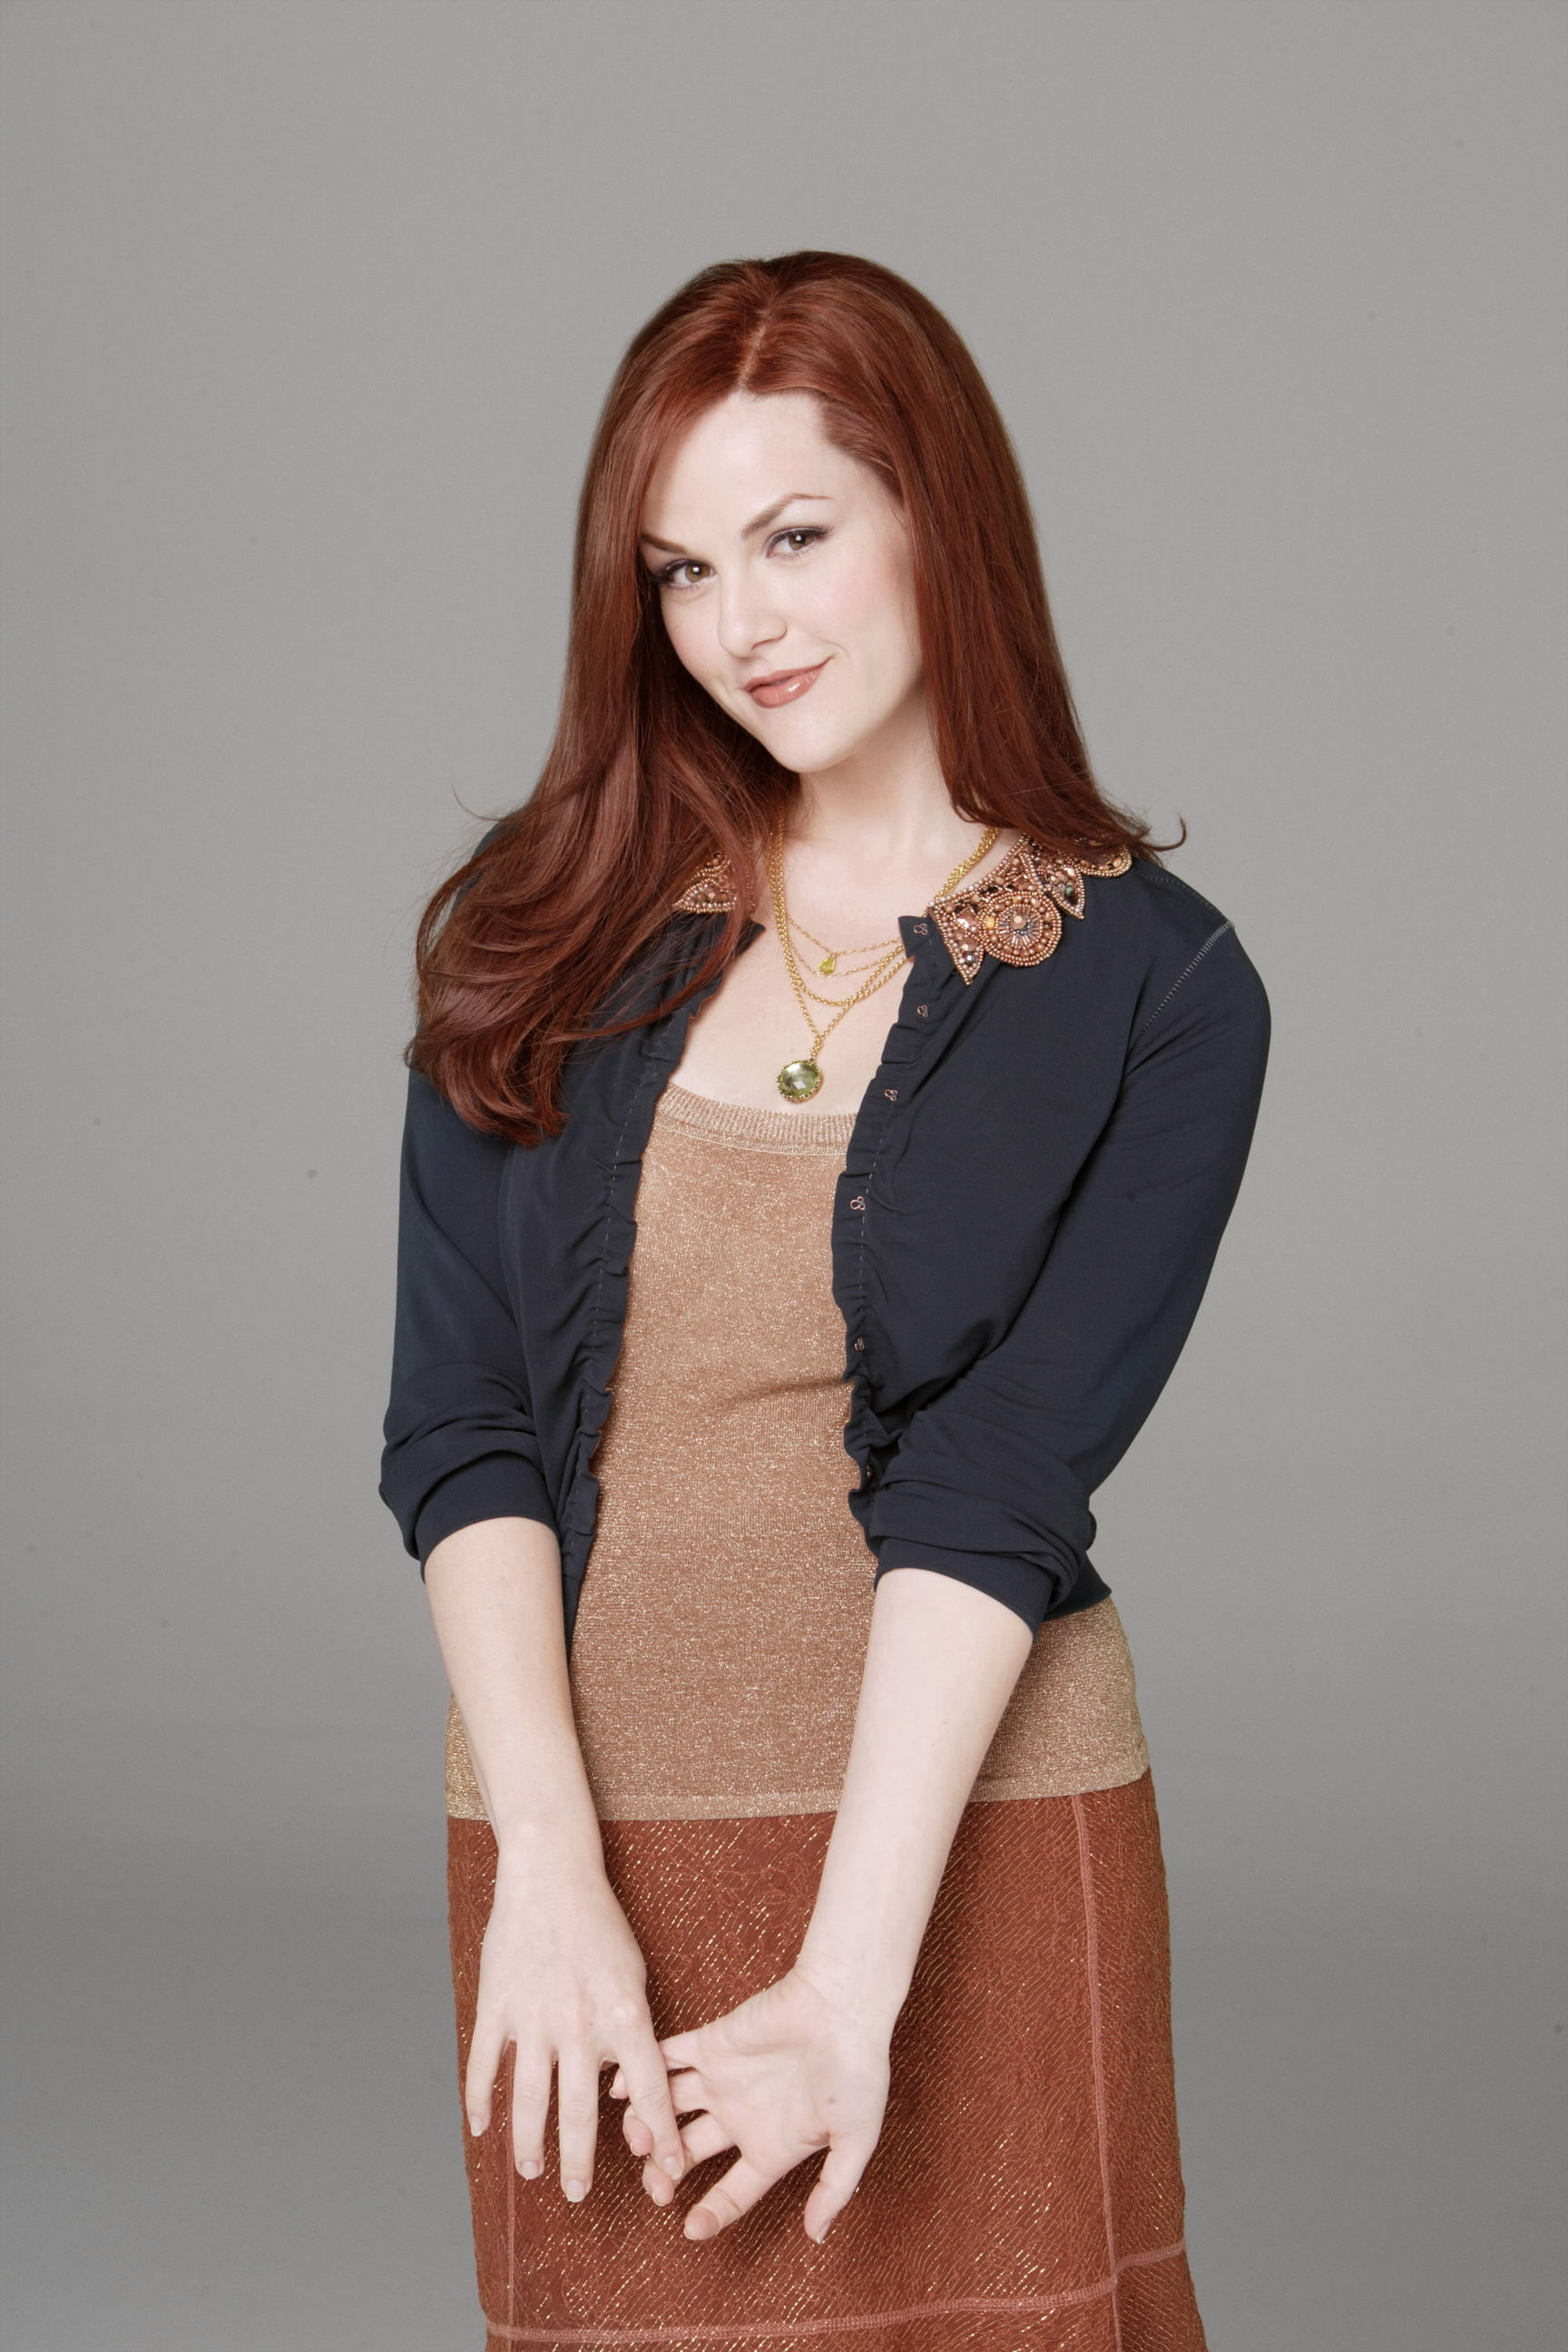 Sara rue rules of engagement